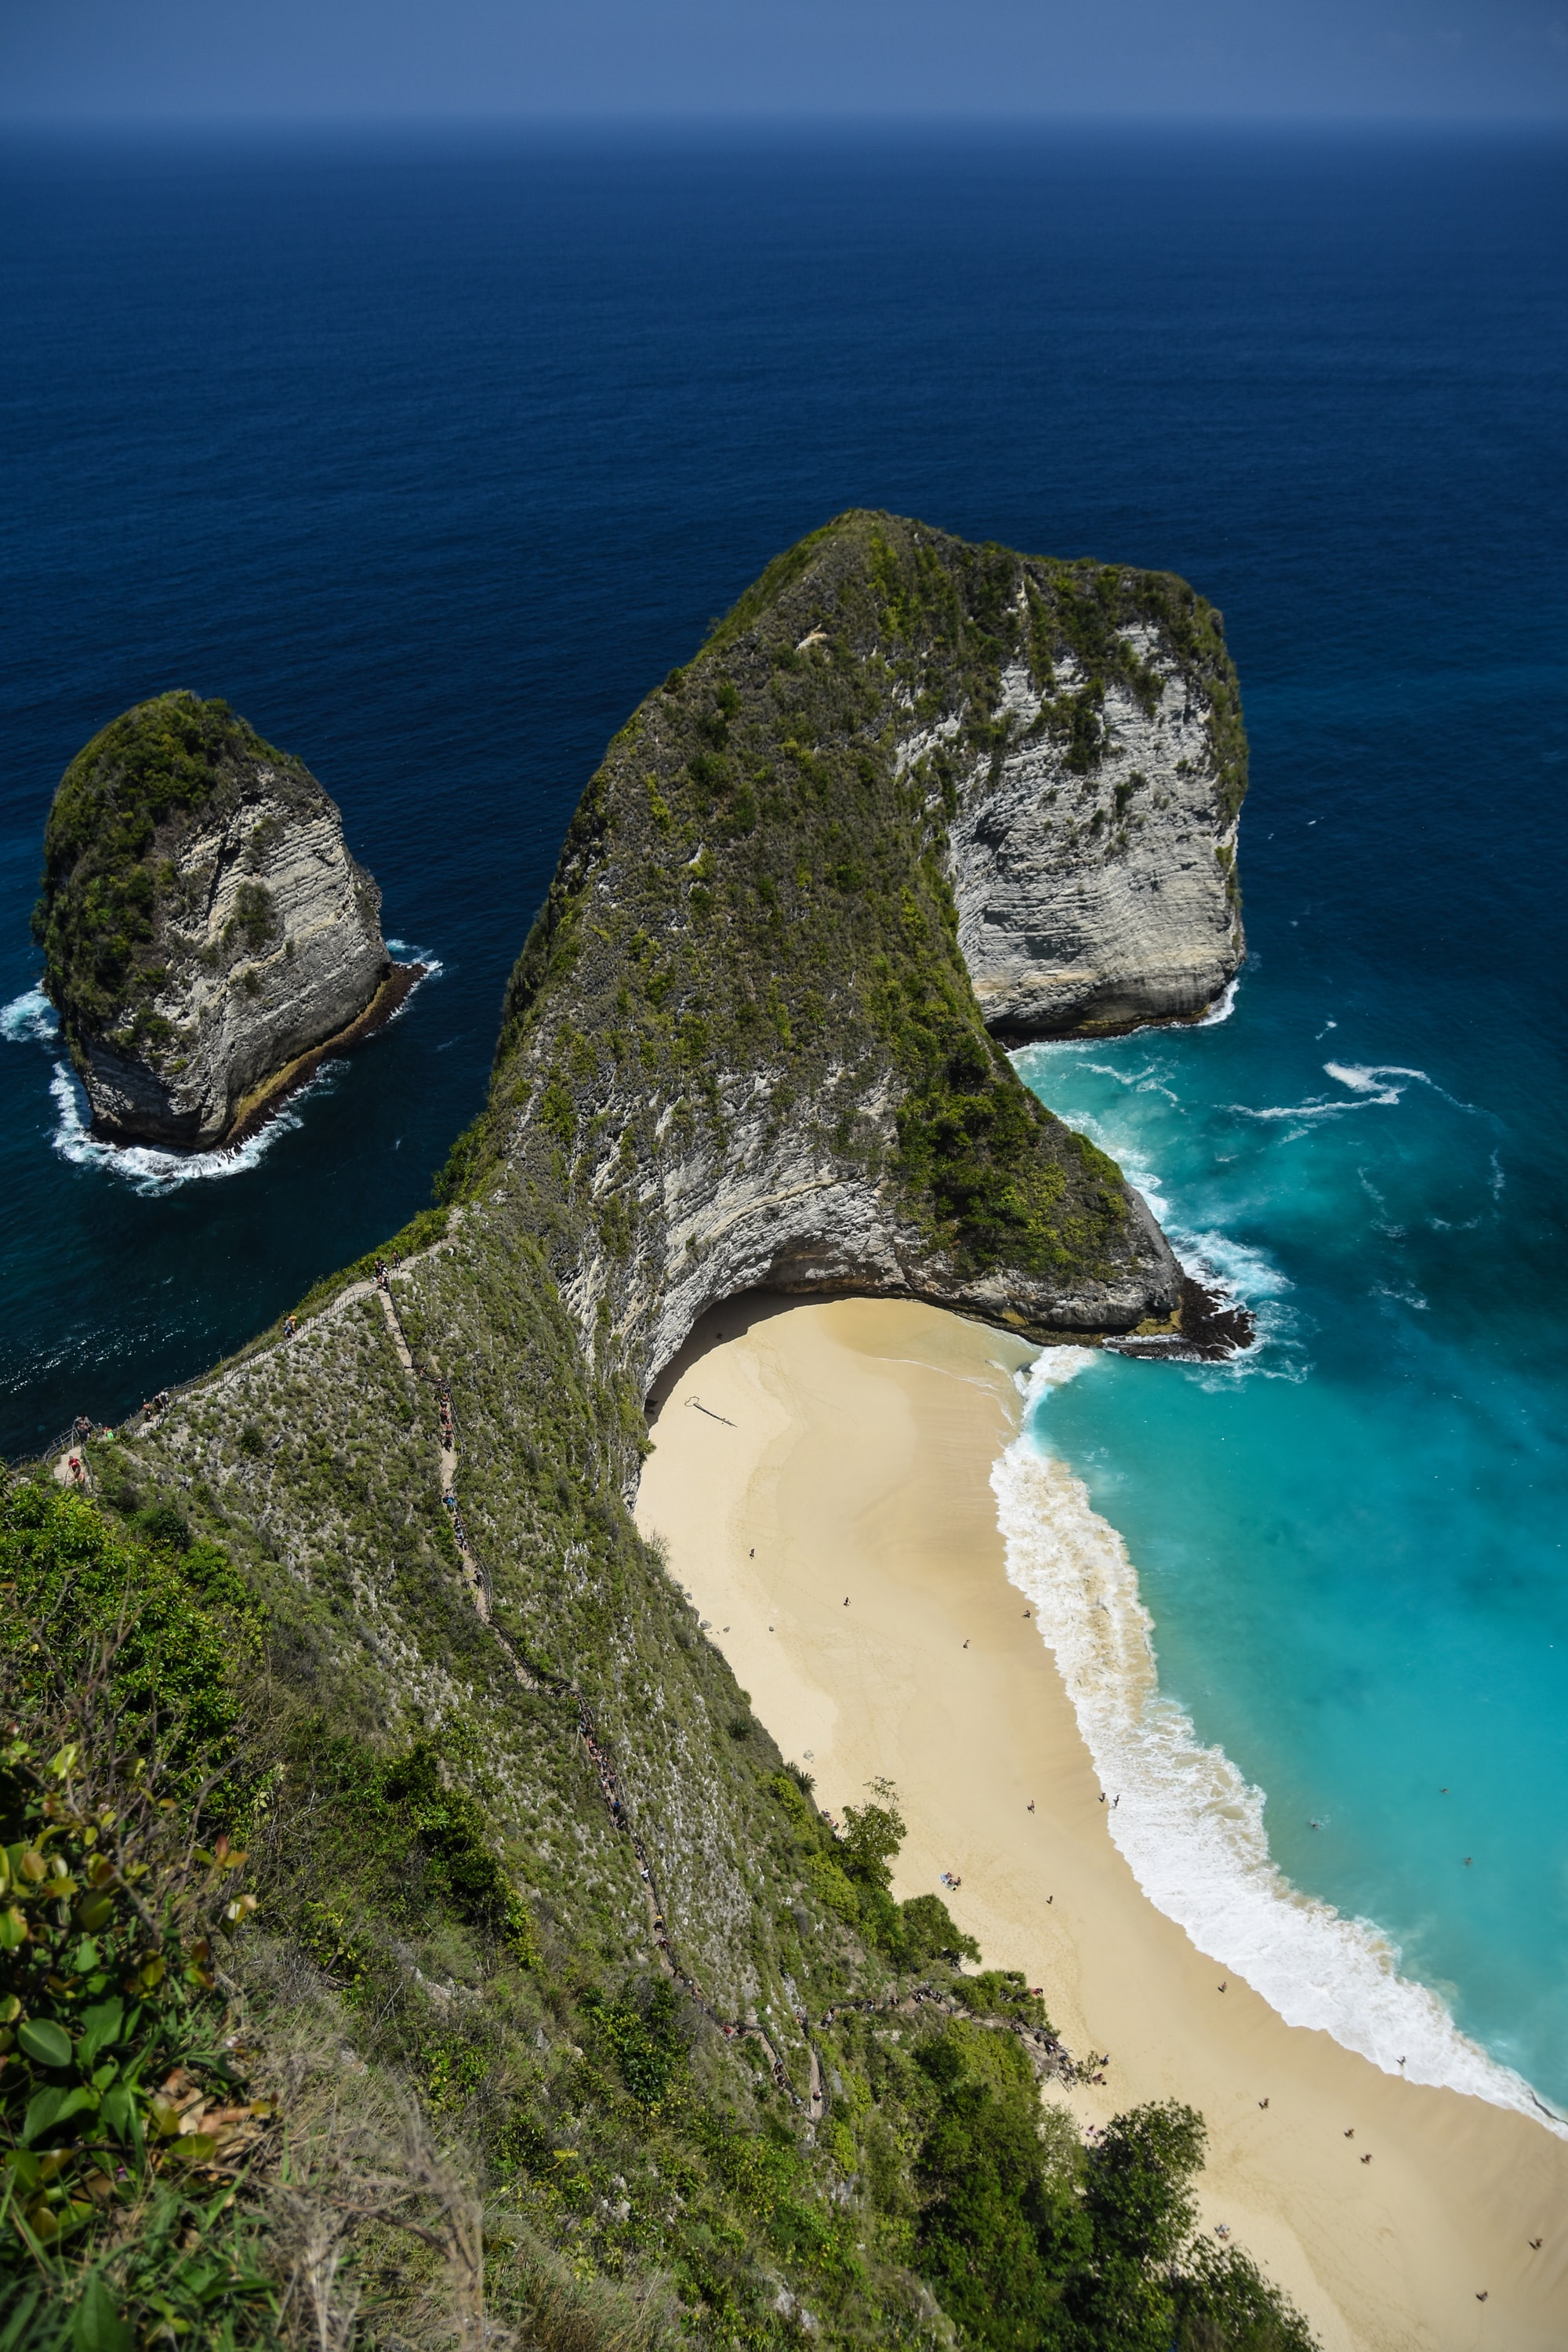 The T-rex beach (Kelingking) in Nusa Penida.